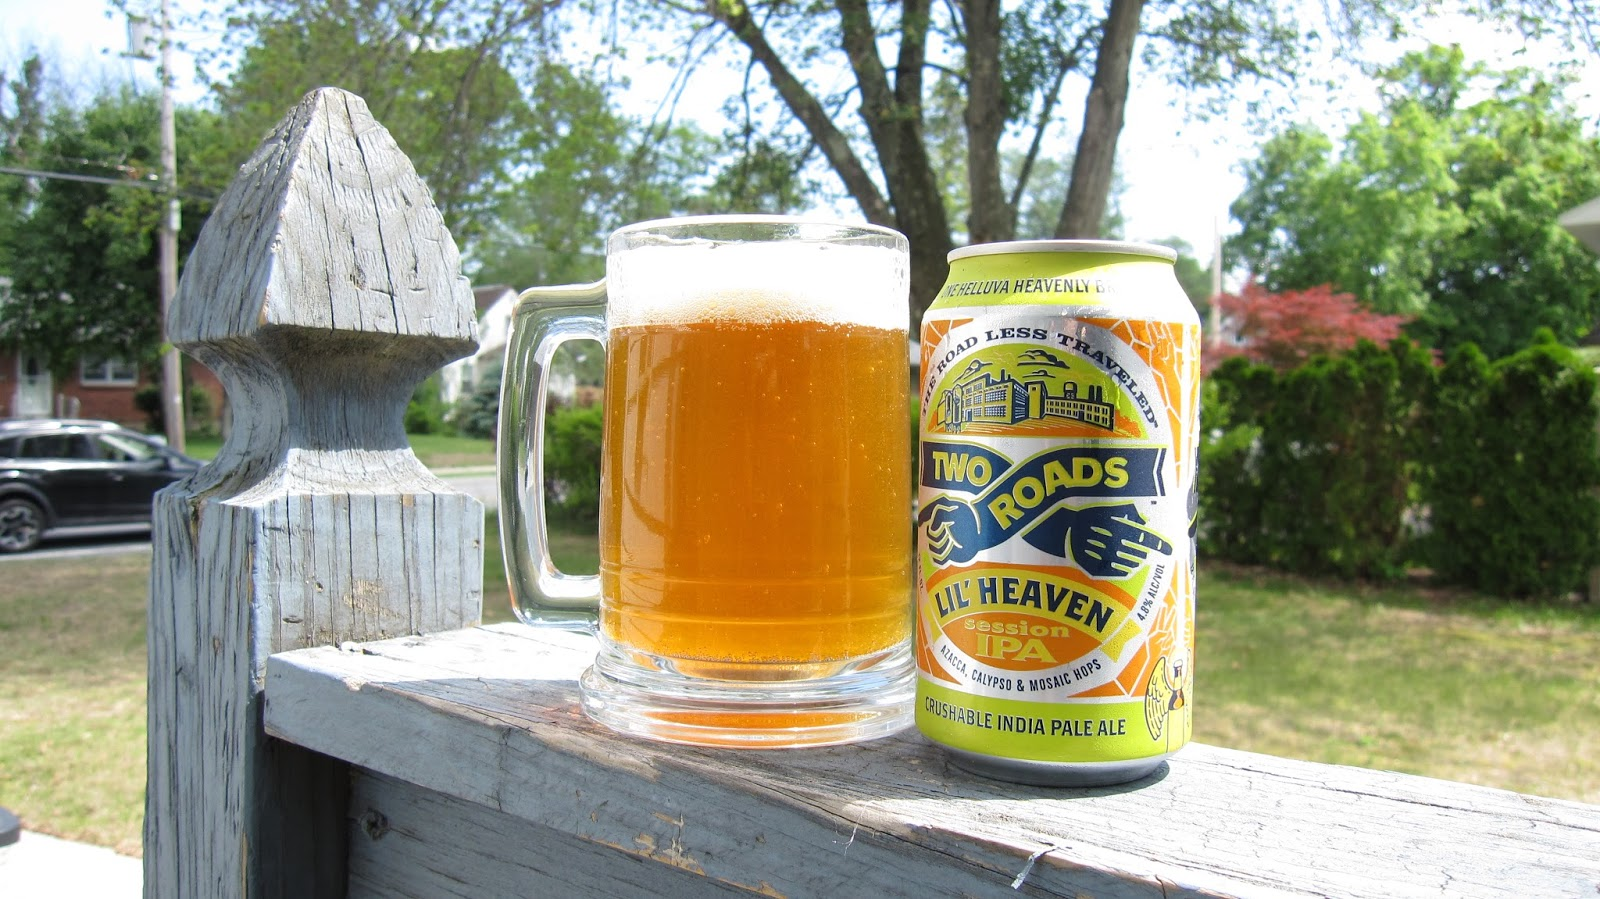 Chad'z Beer Reviews: Two Roads Lil' Heaven Session IPA